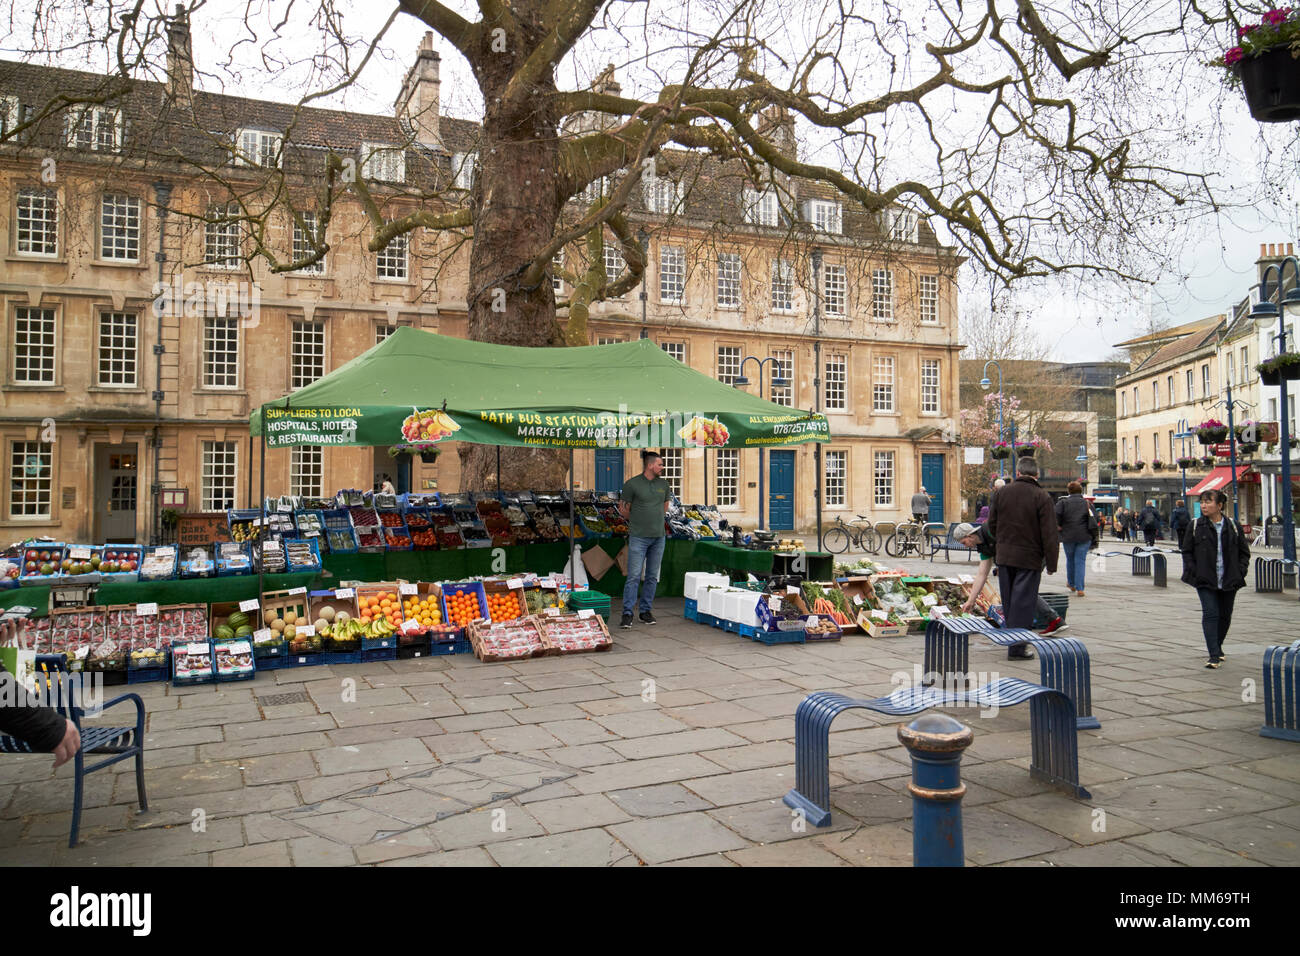 fruit market stall in kingsmead square under the london plane tree Bath England UK - Stock Image